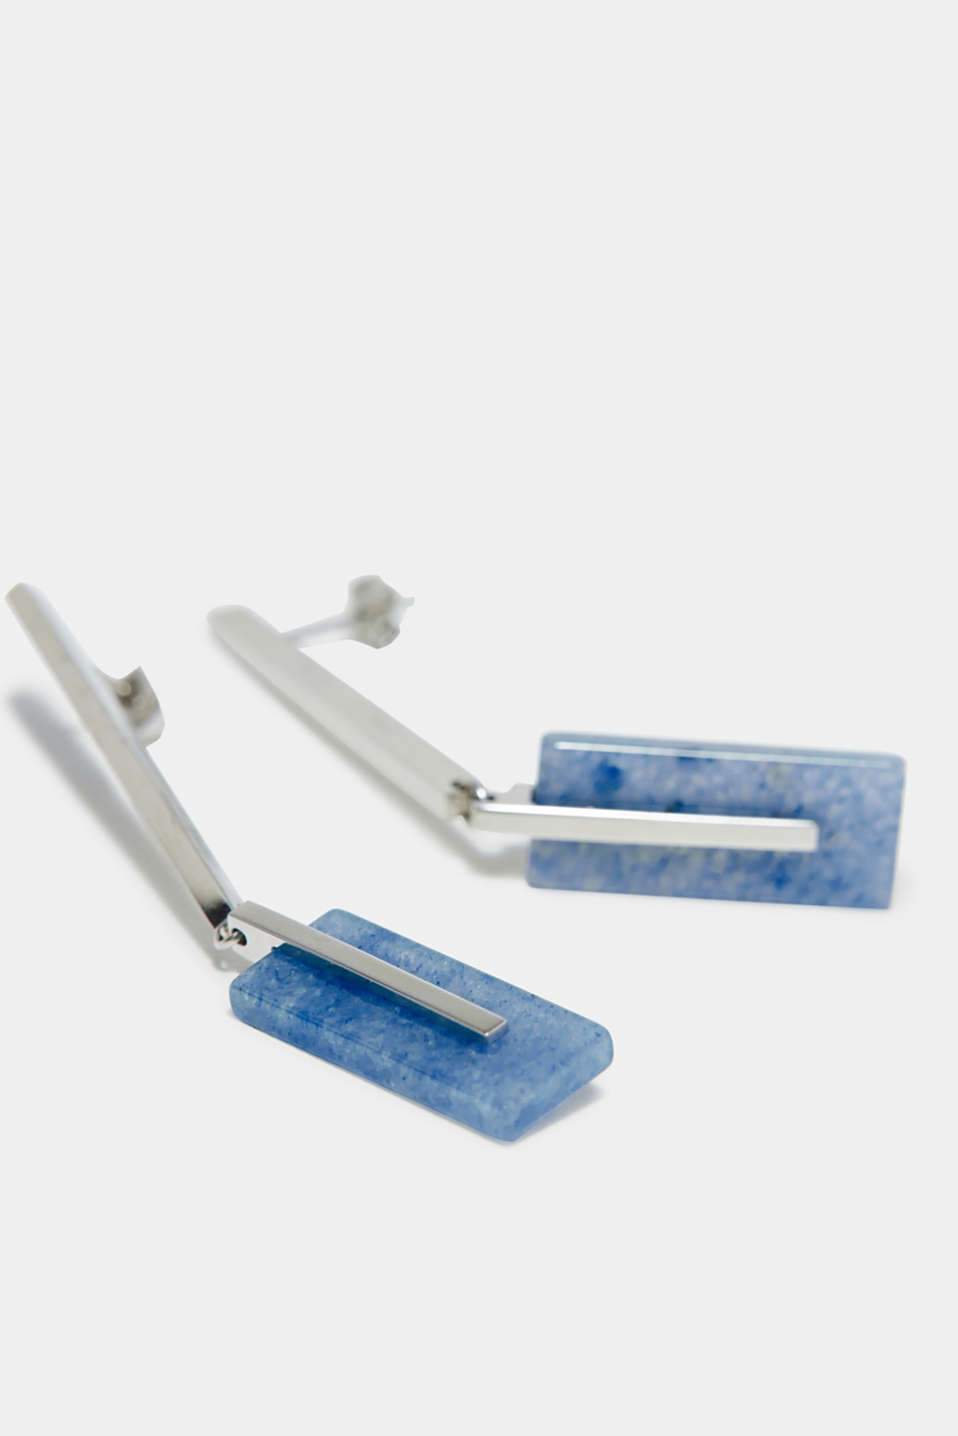 Esprit - Long stud earrings with an artificial delicate blue gemstone, stainless steel